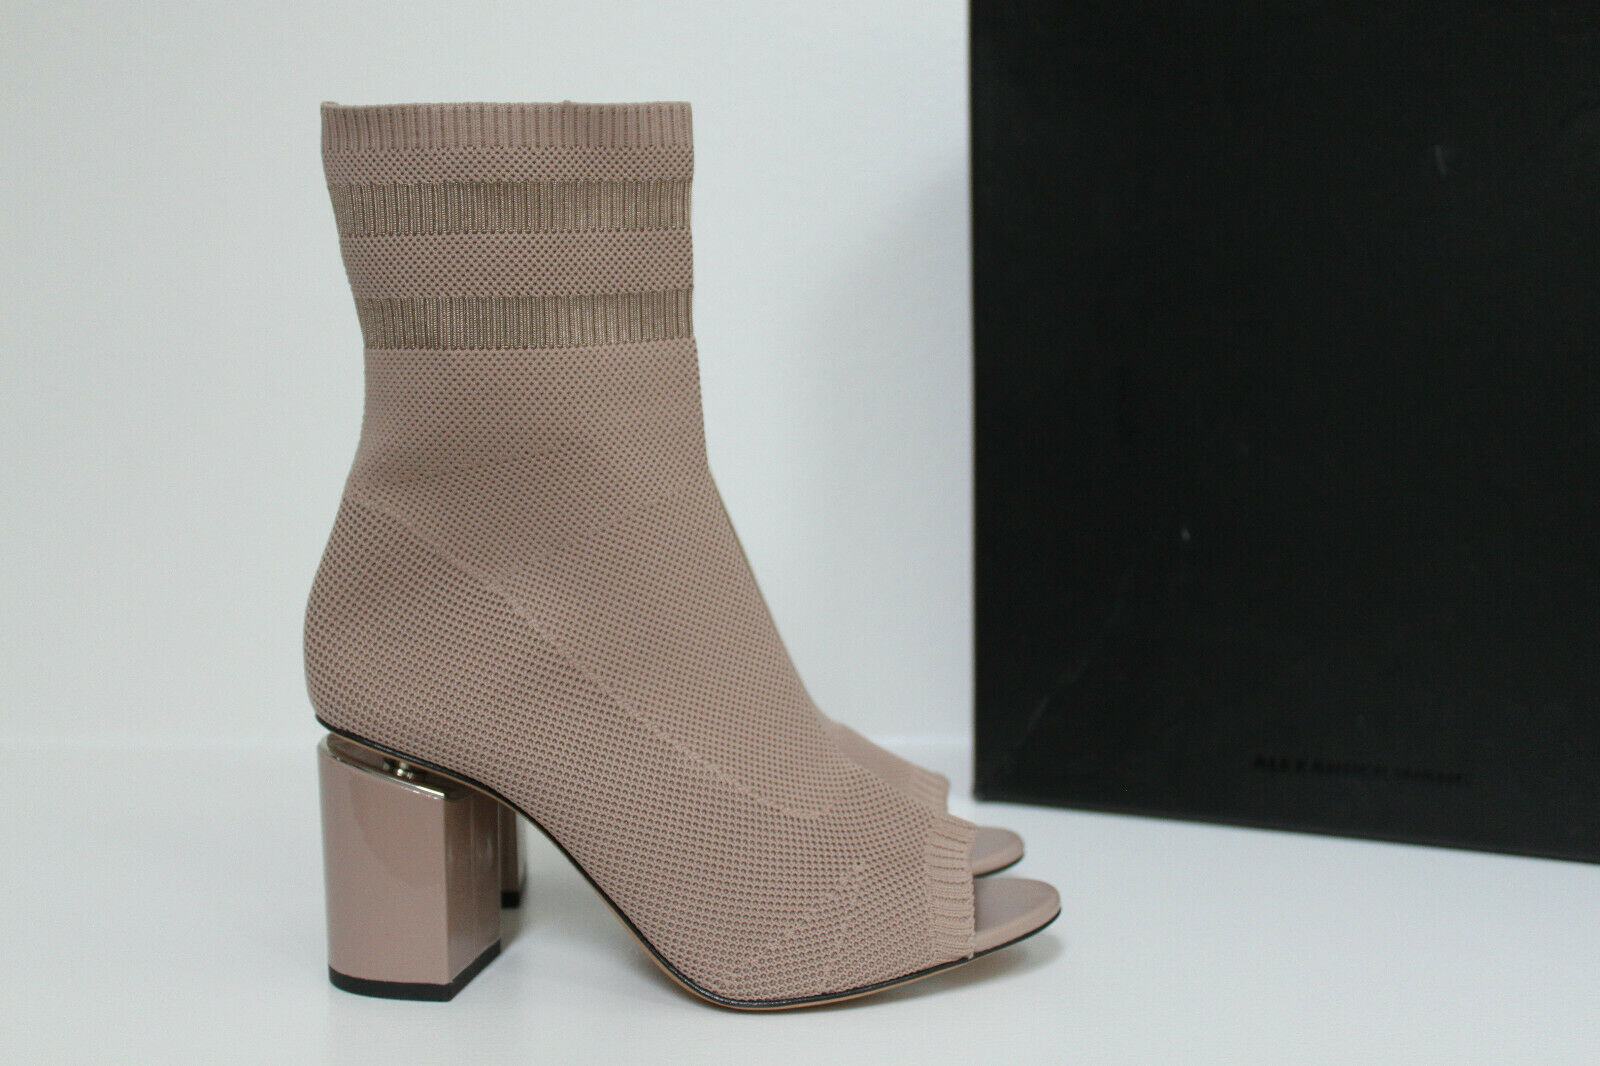 New sz 7   37.5 Alexander Wang Cat Nude Knit Sock Open Toe Ankle Boot shoes